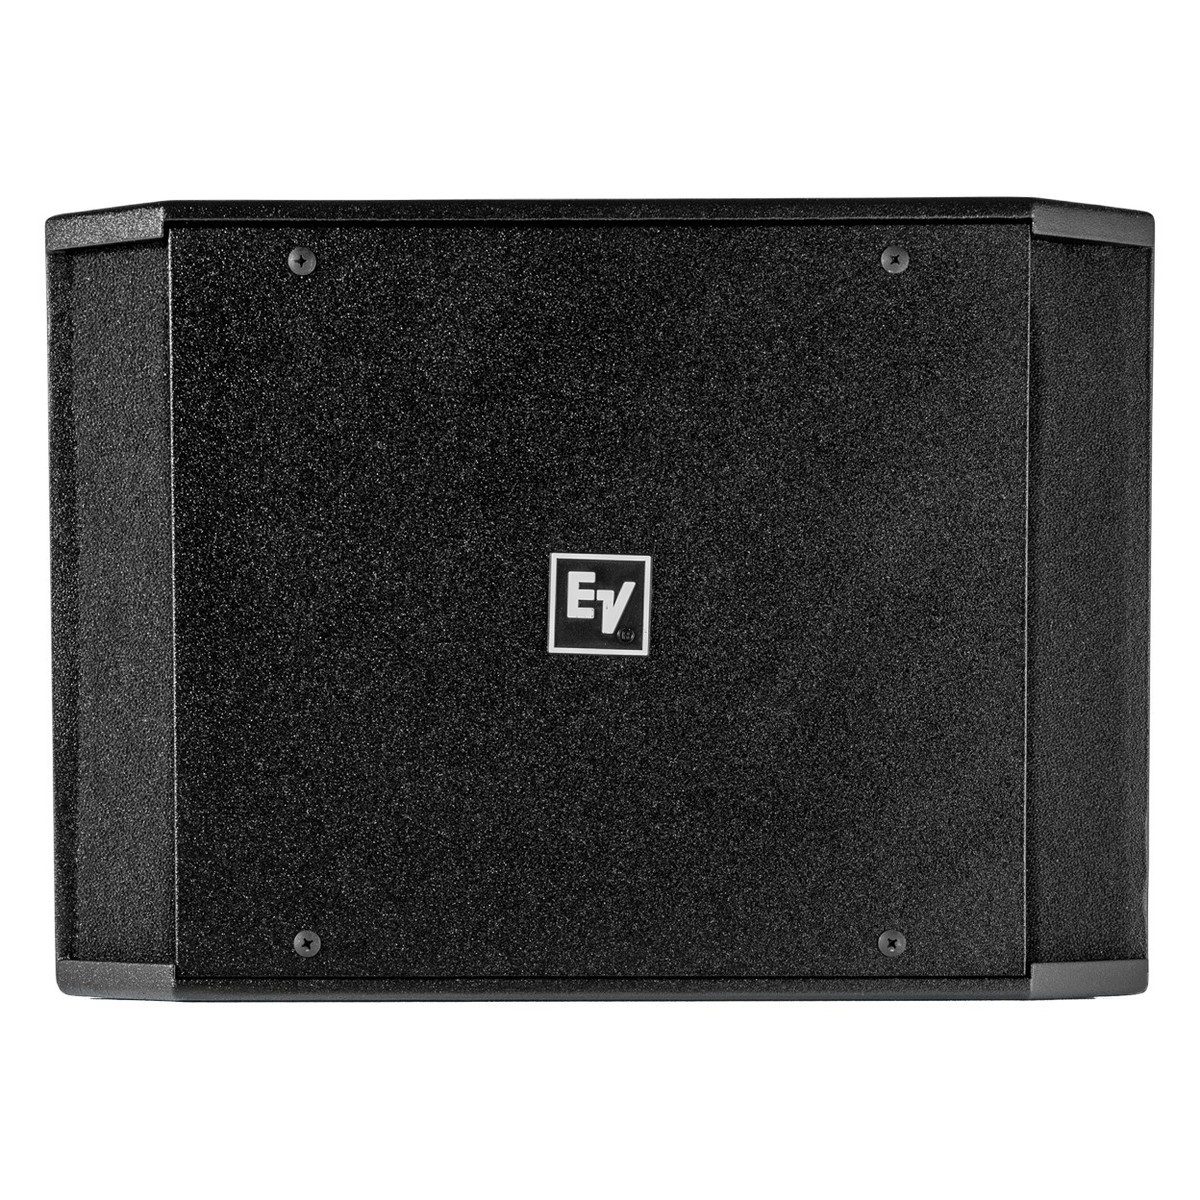 Click to view product details and reviews for Electro Voice Evid S121 Installation Subwoofer.